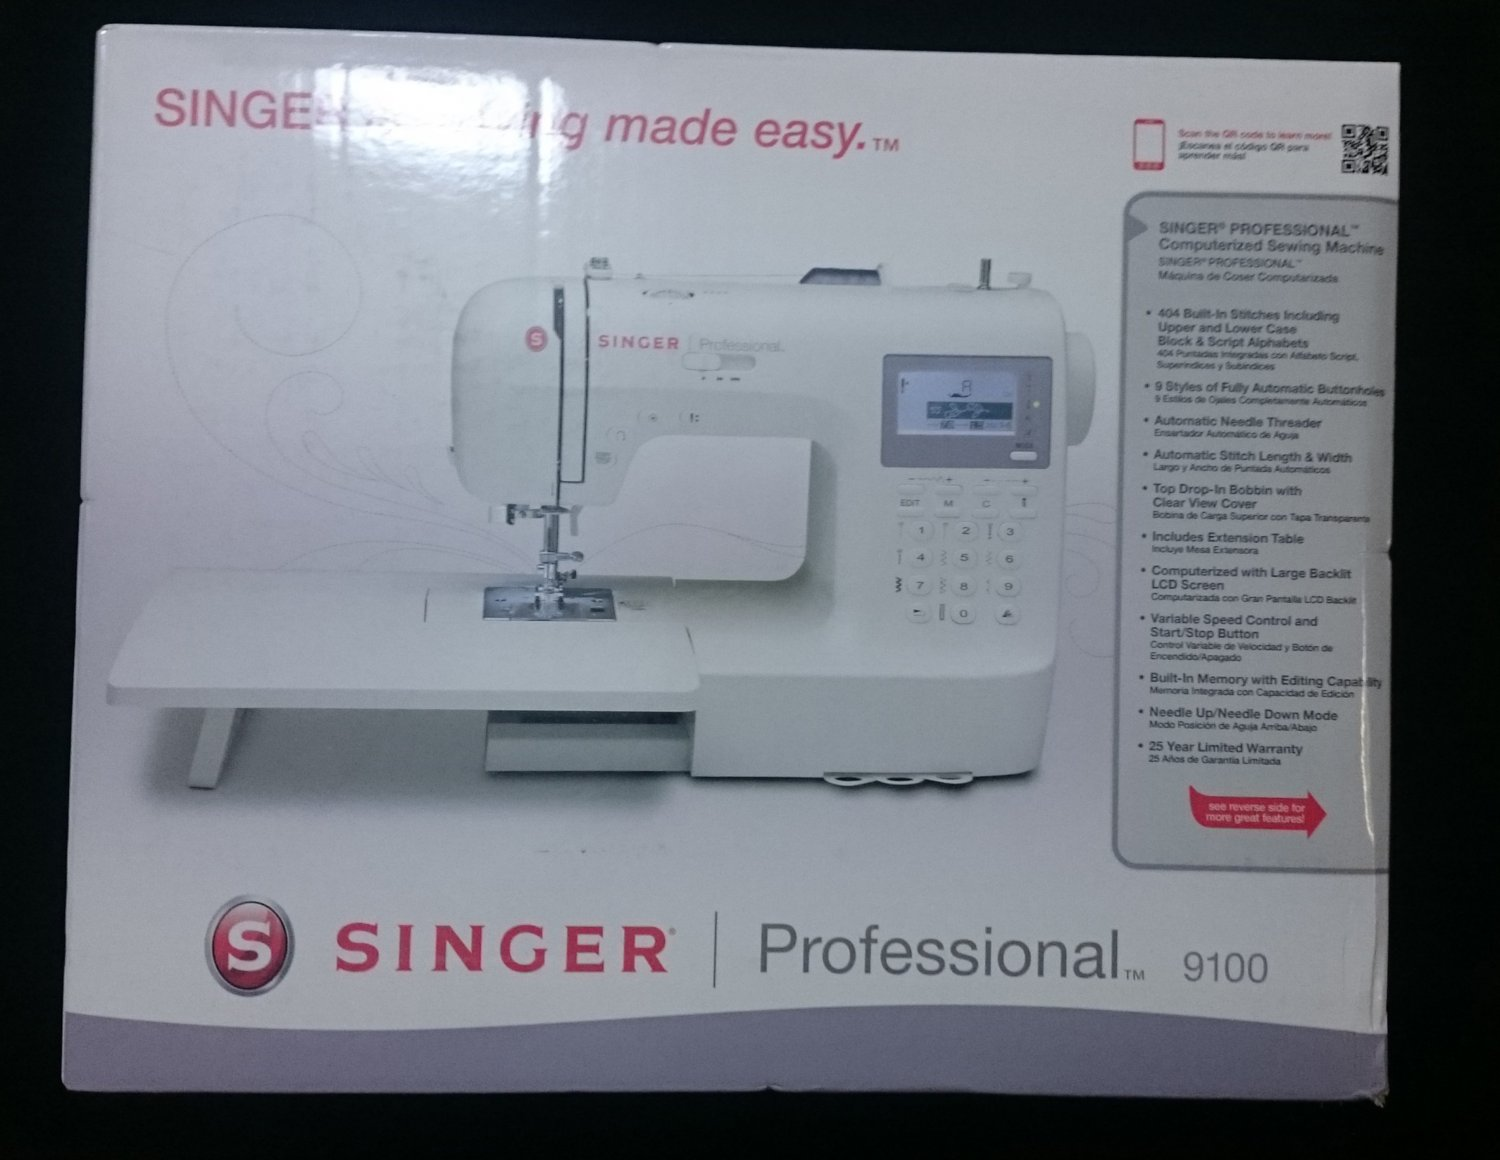 singer sewing machine professional